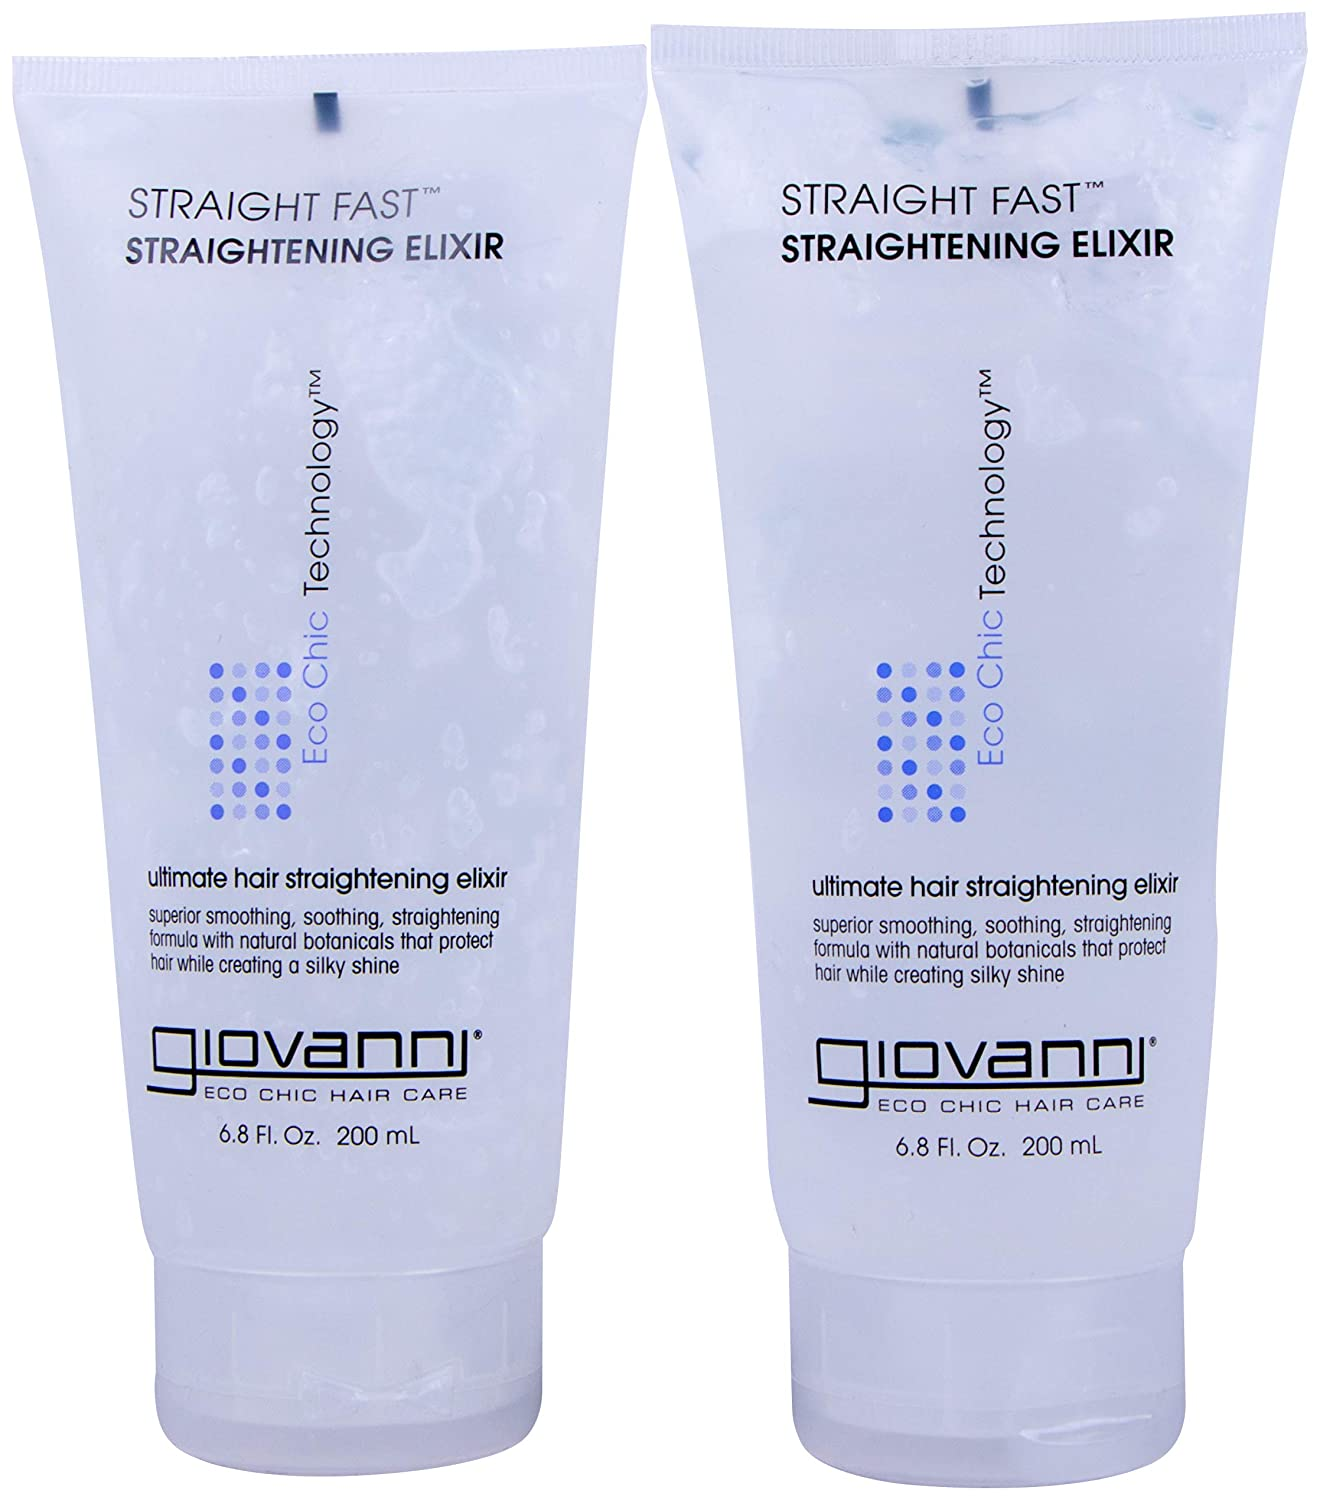 Giovanni Hair Straightening Elixir, Straight Fast with Shine Enhancers, 6.8 lf oz Containers (Pack of 2)